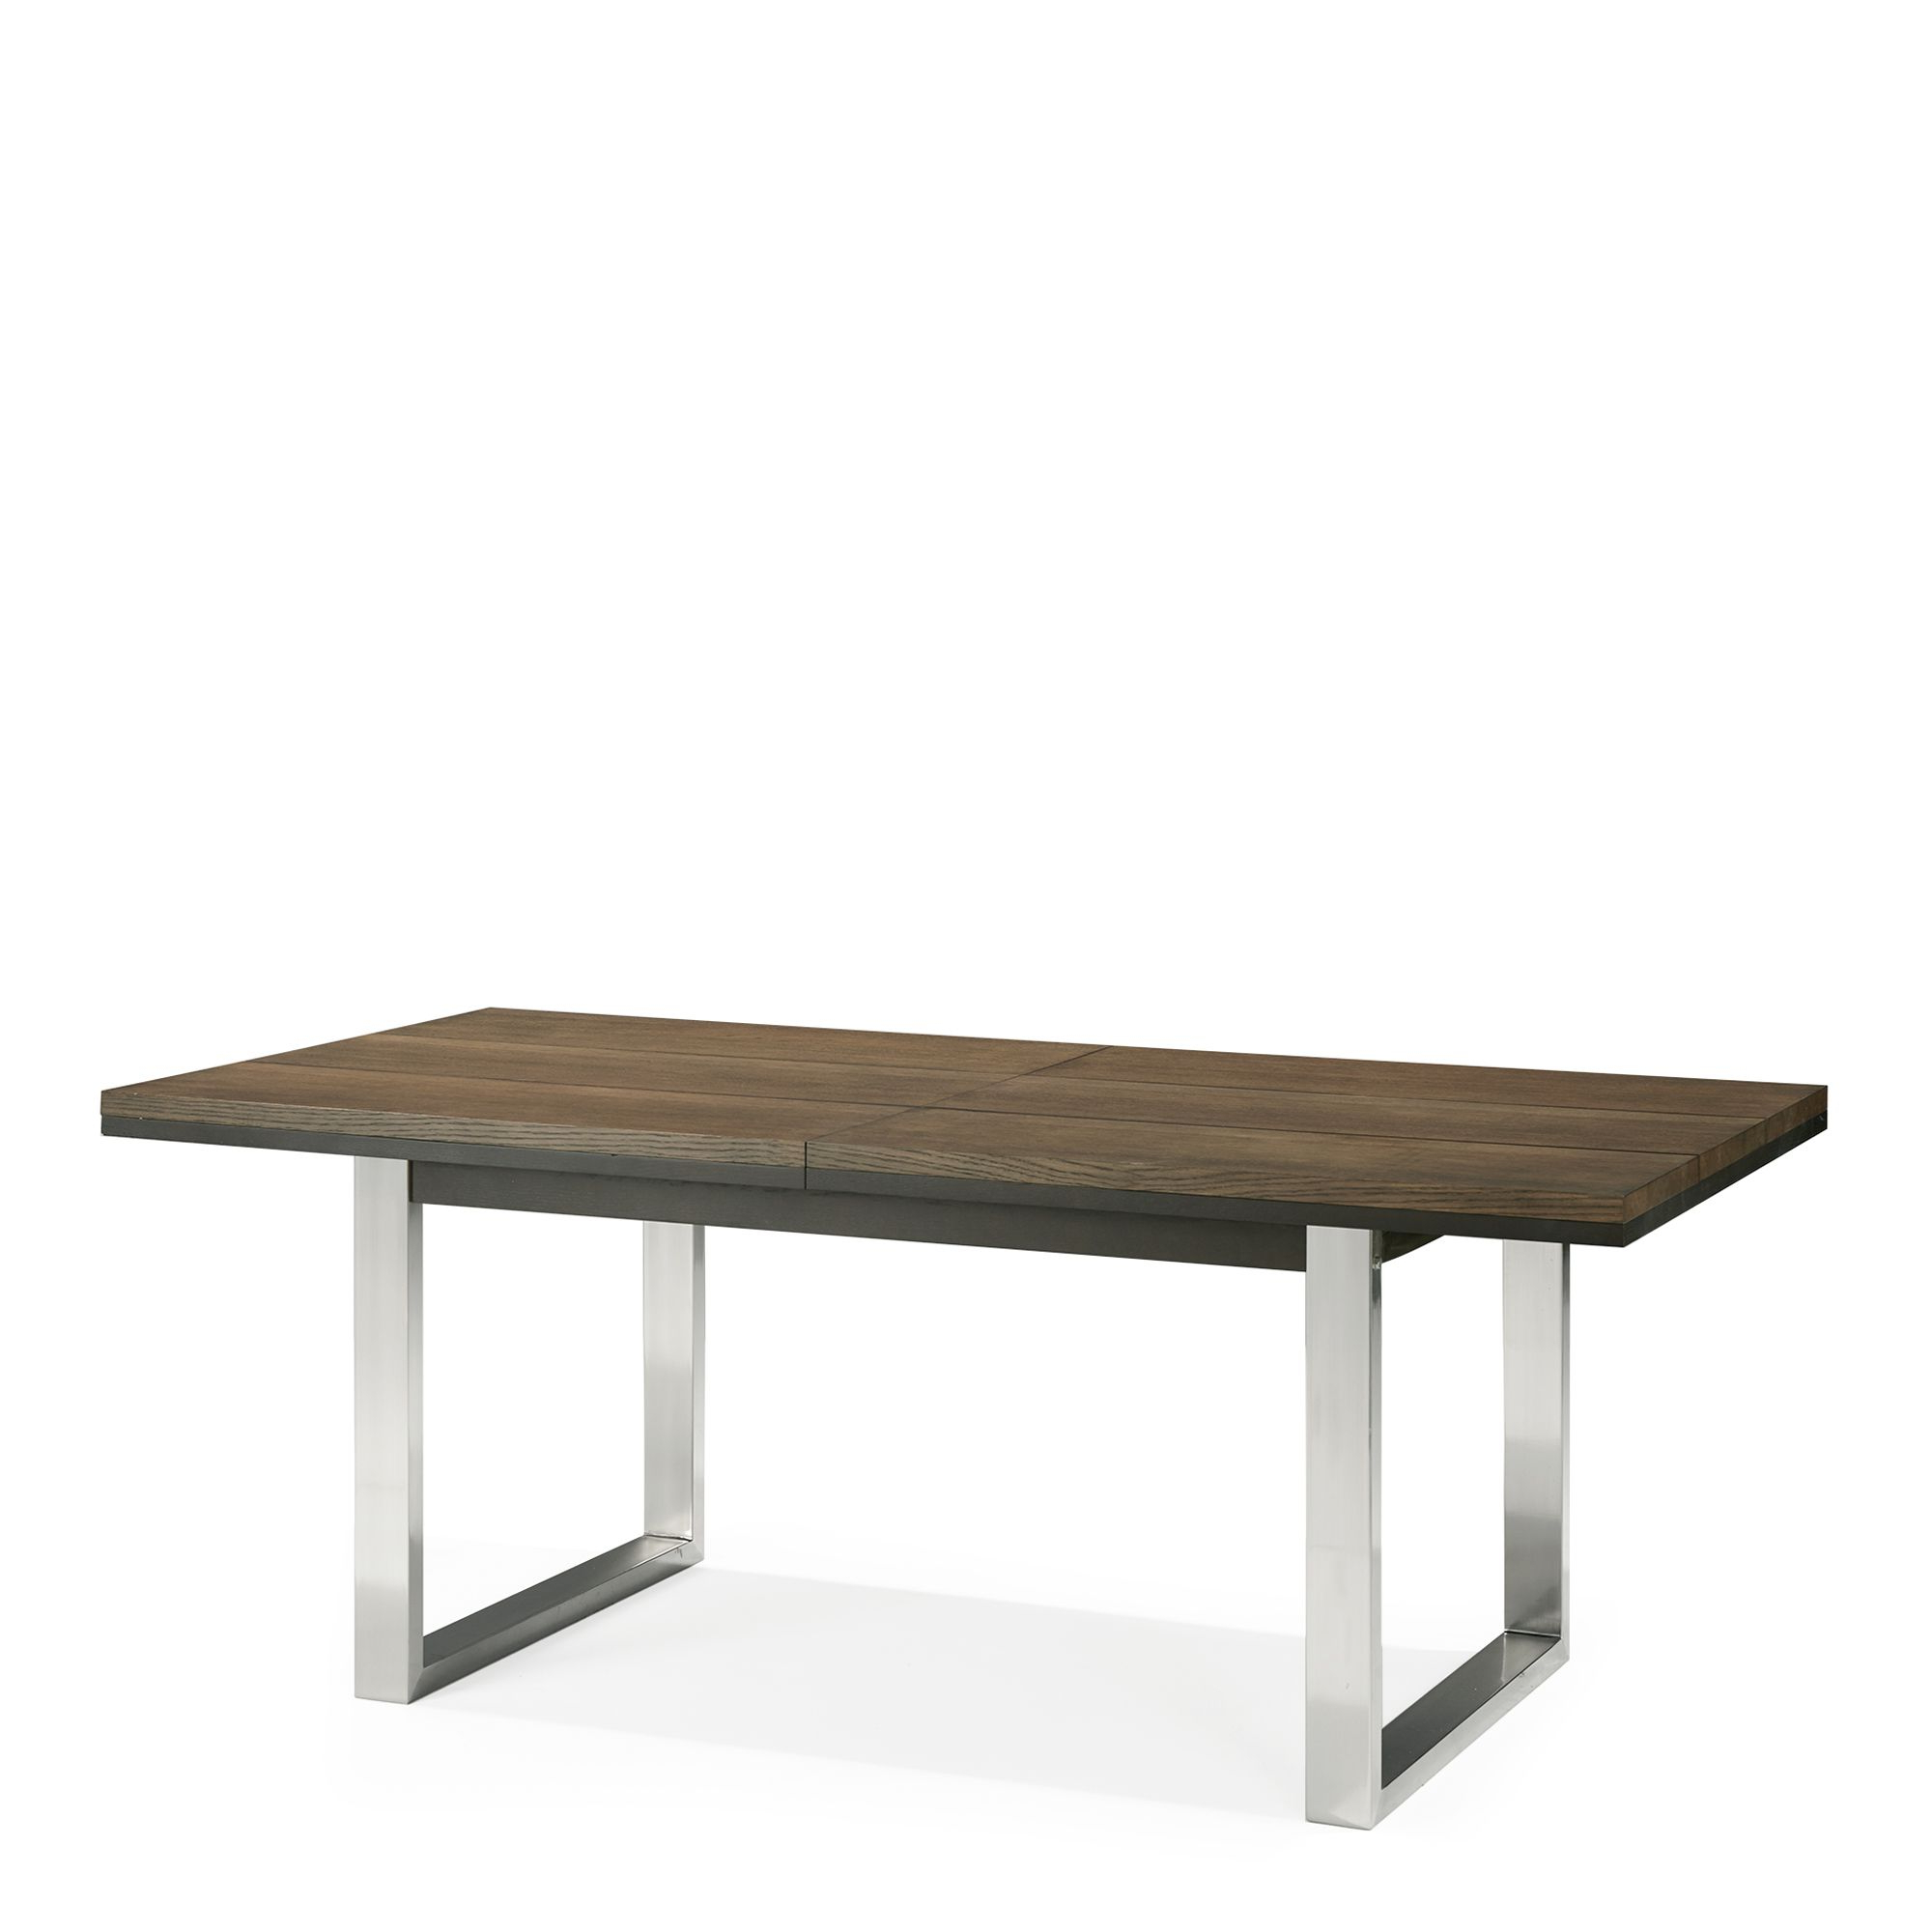 Tivoli 6 8 Extension Dining Table Intended For Latest Provence Accent Dining Tables (View 22 of 30)